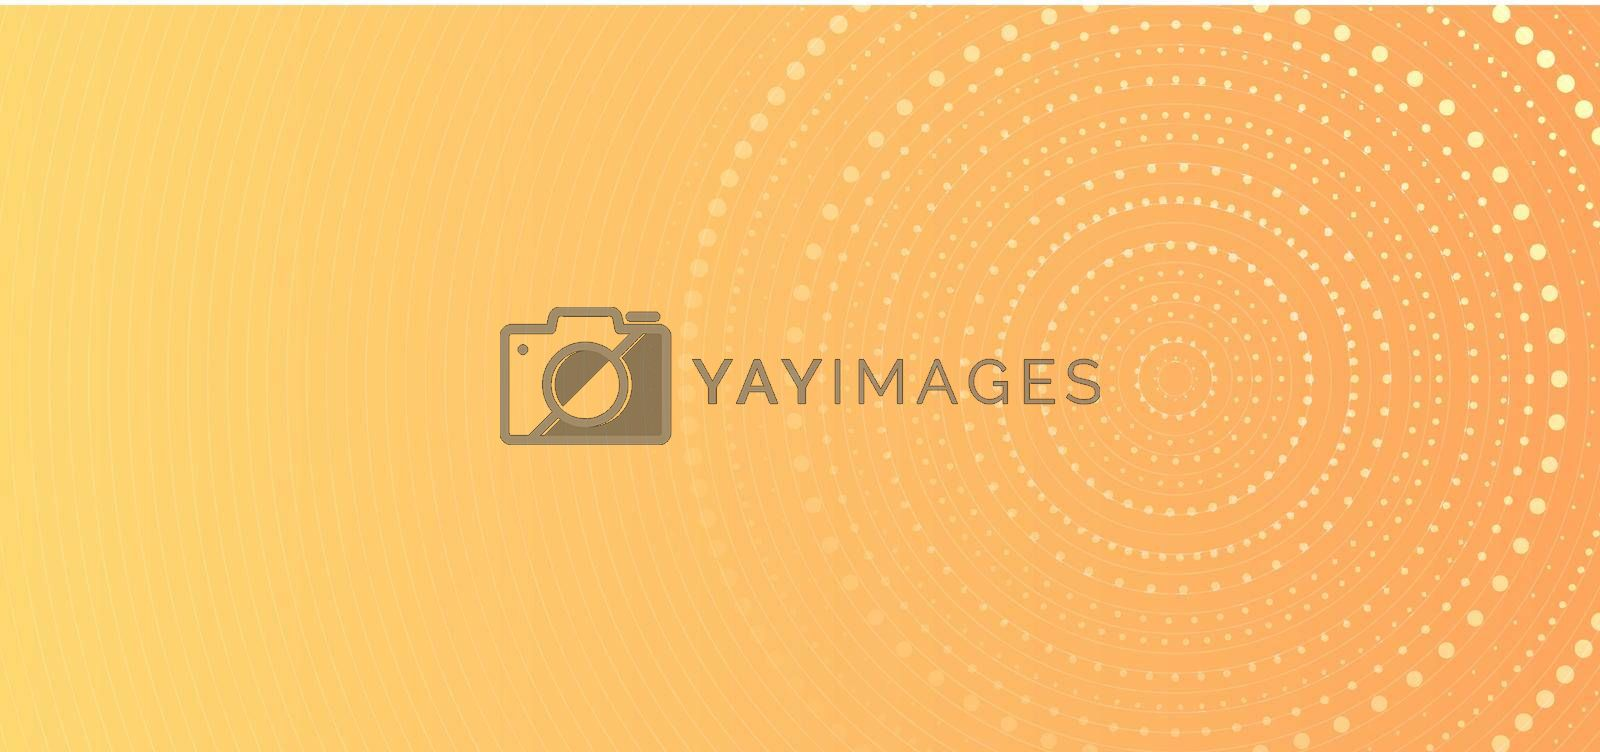 Royalty free image of Banner web template abstract yellow gradient circles dots halftone pattern background by phochi